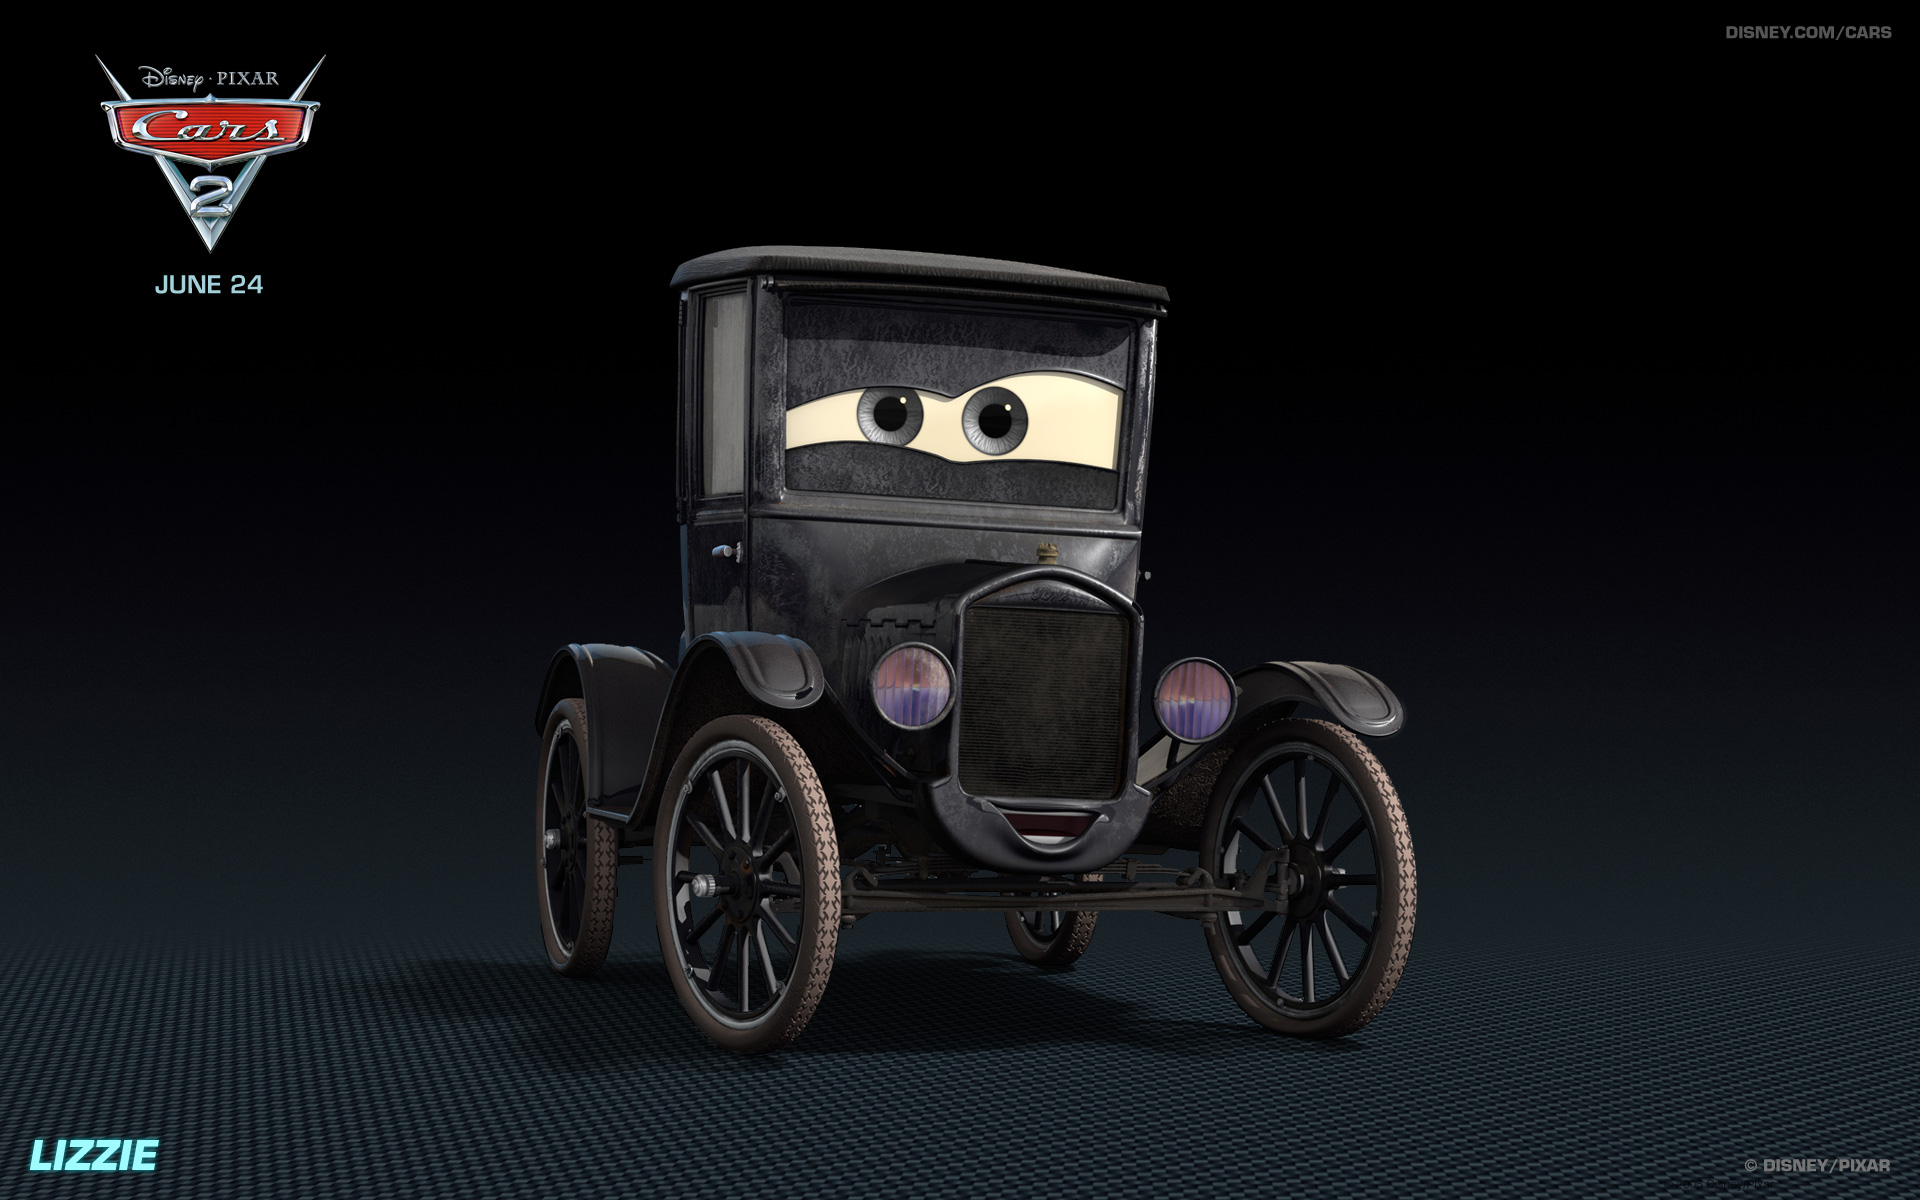 Lizzie The Old Car From Disney S Cars Hd Desktop Wallpaper